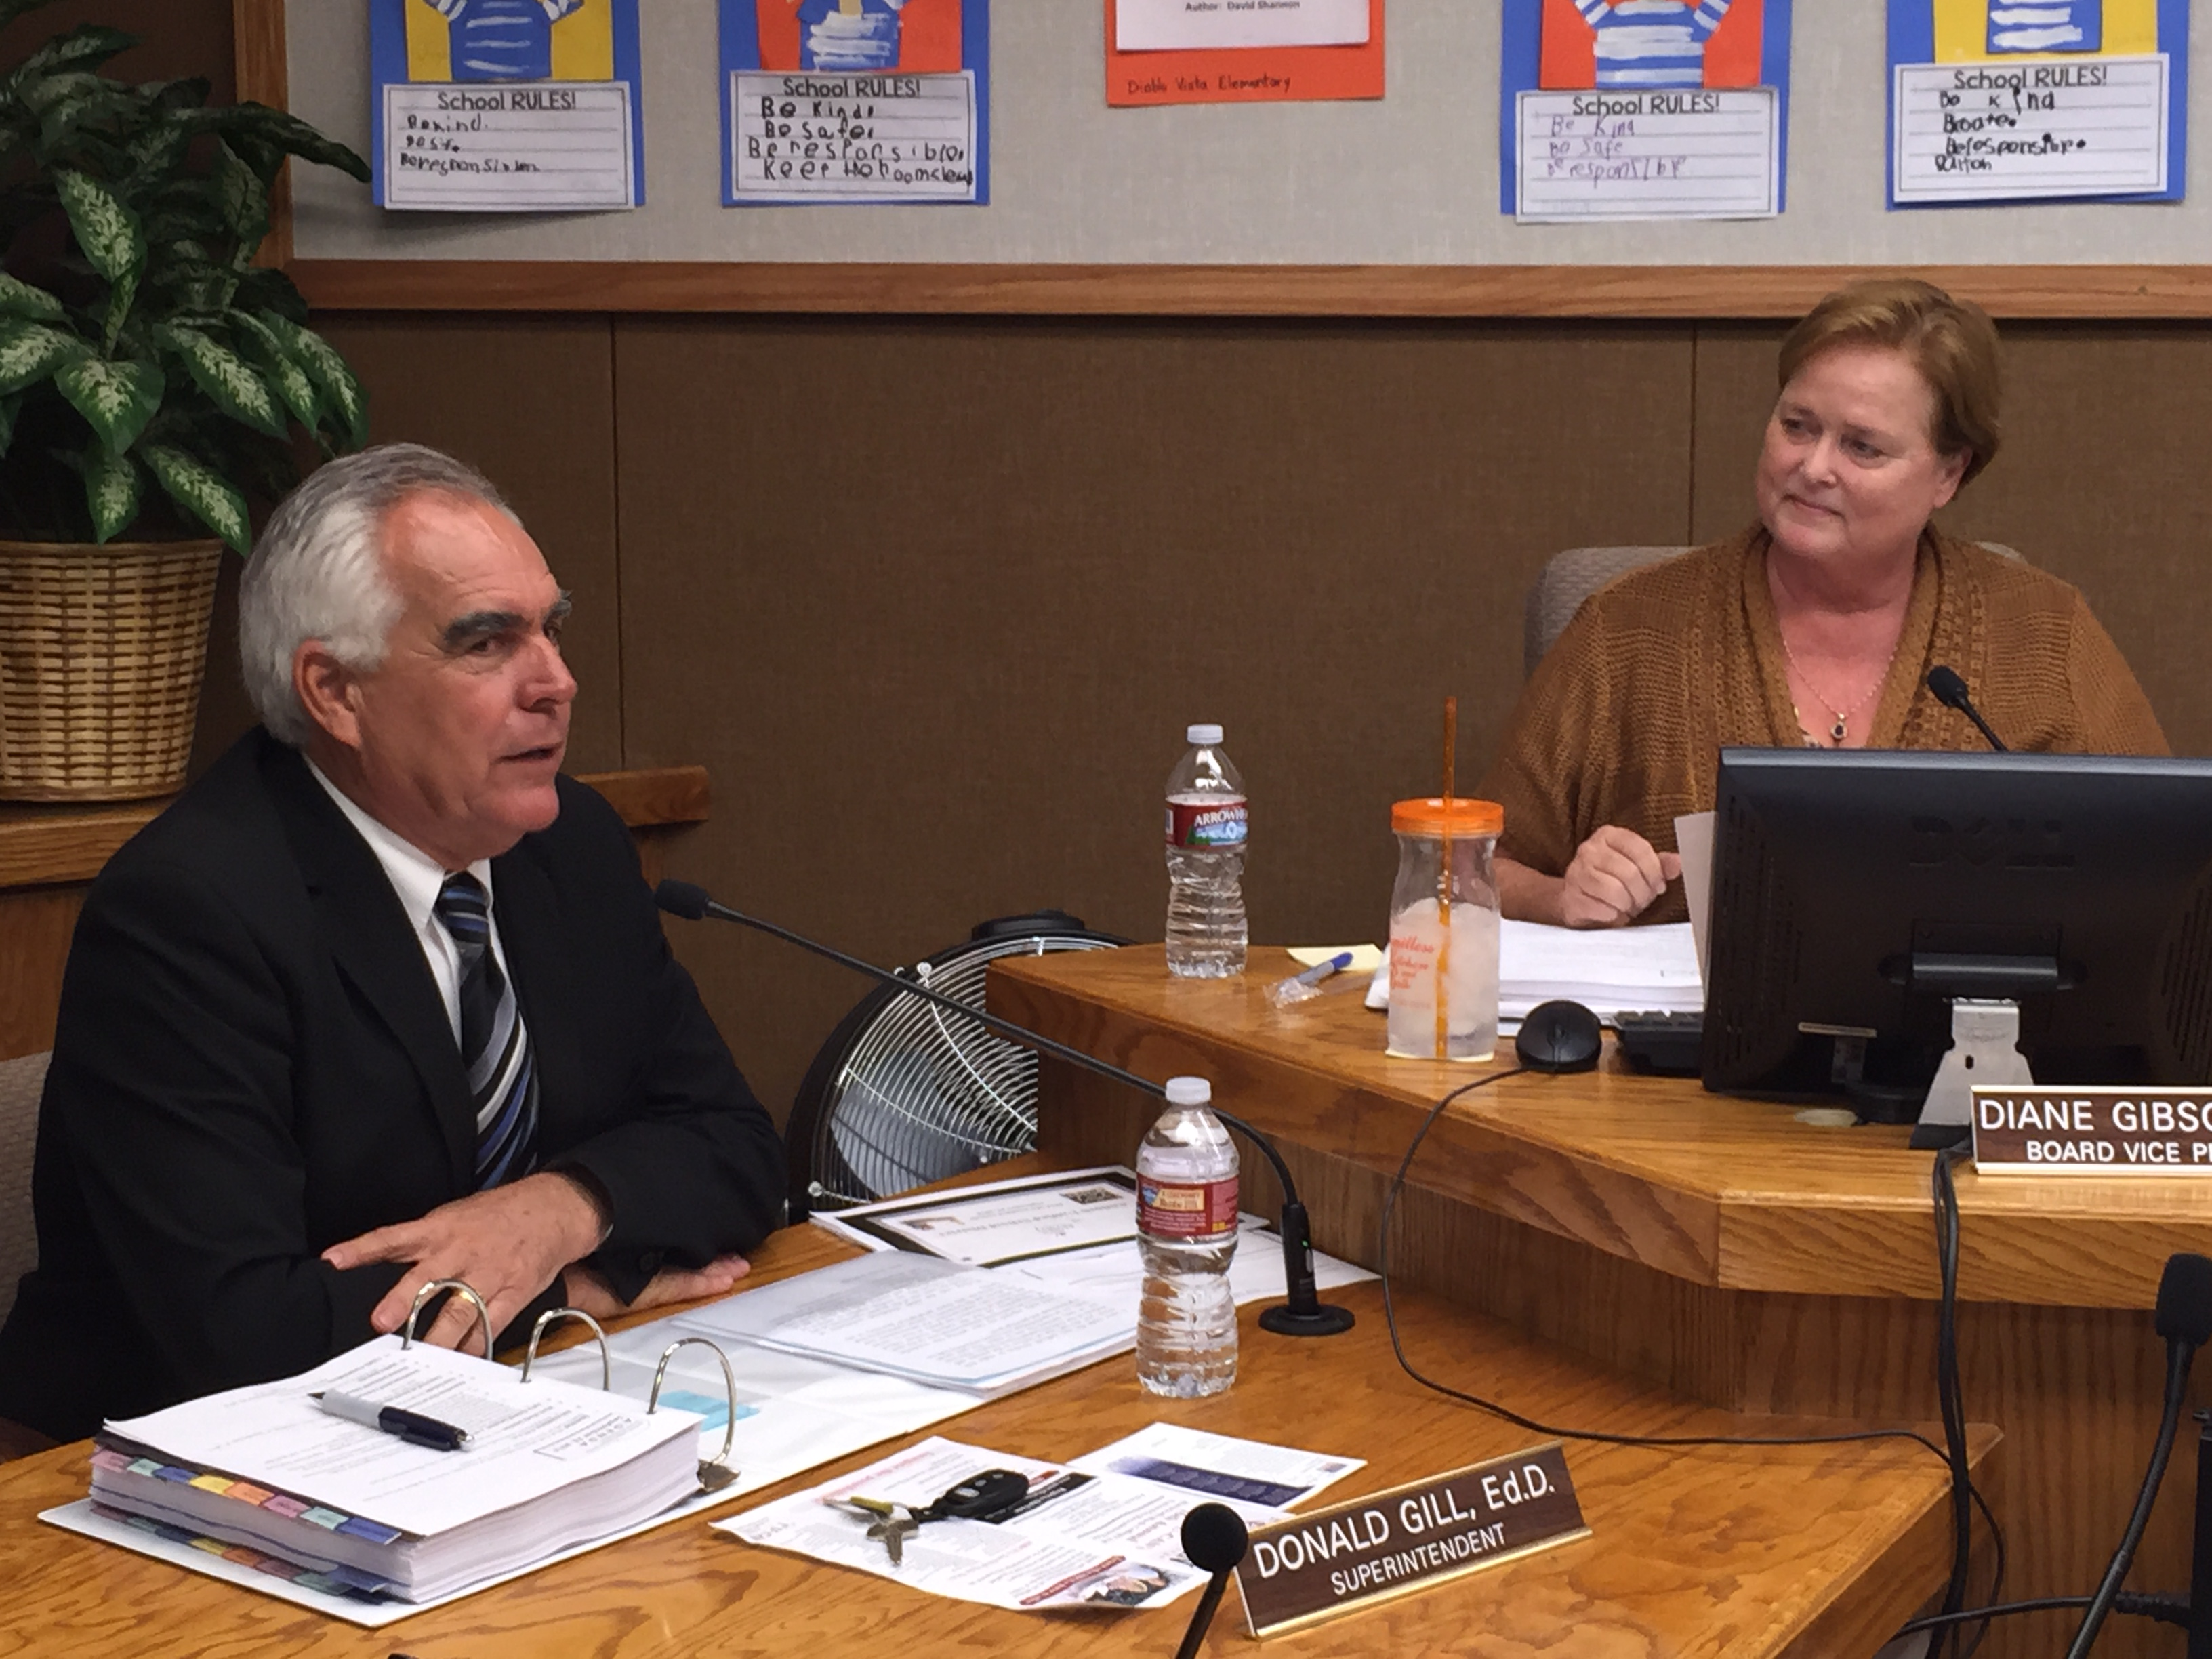 antioch superintendent don gill announces resignation trustee dr don gill speaks of his announced resignation while antioch school board trustee diane gibson